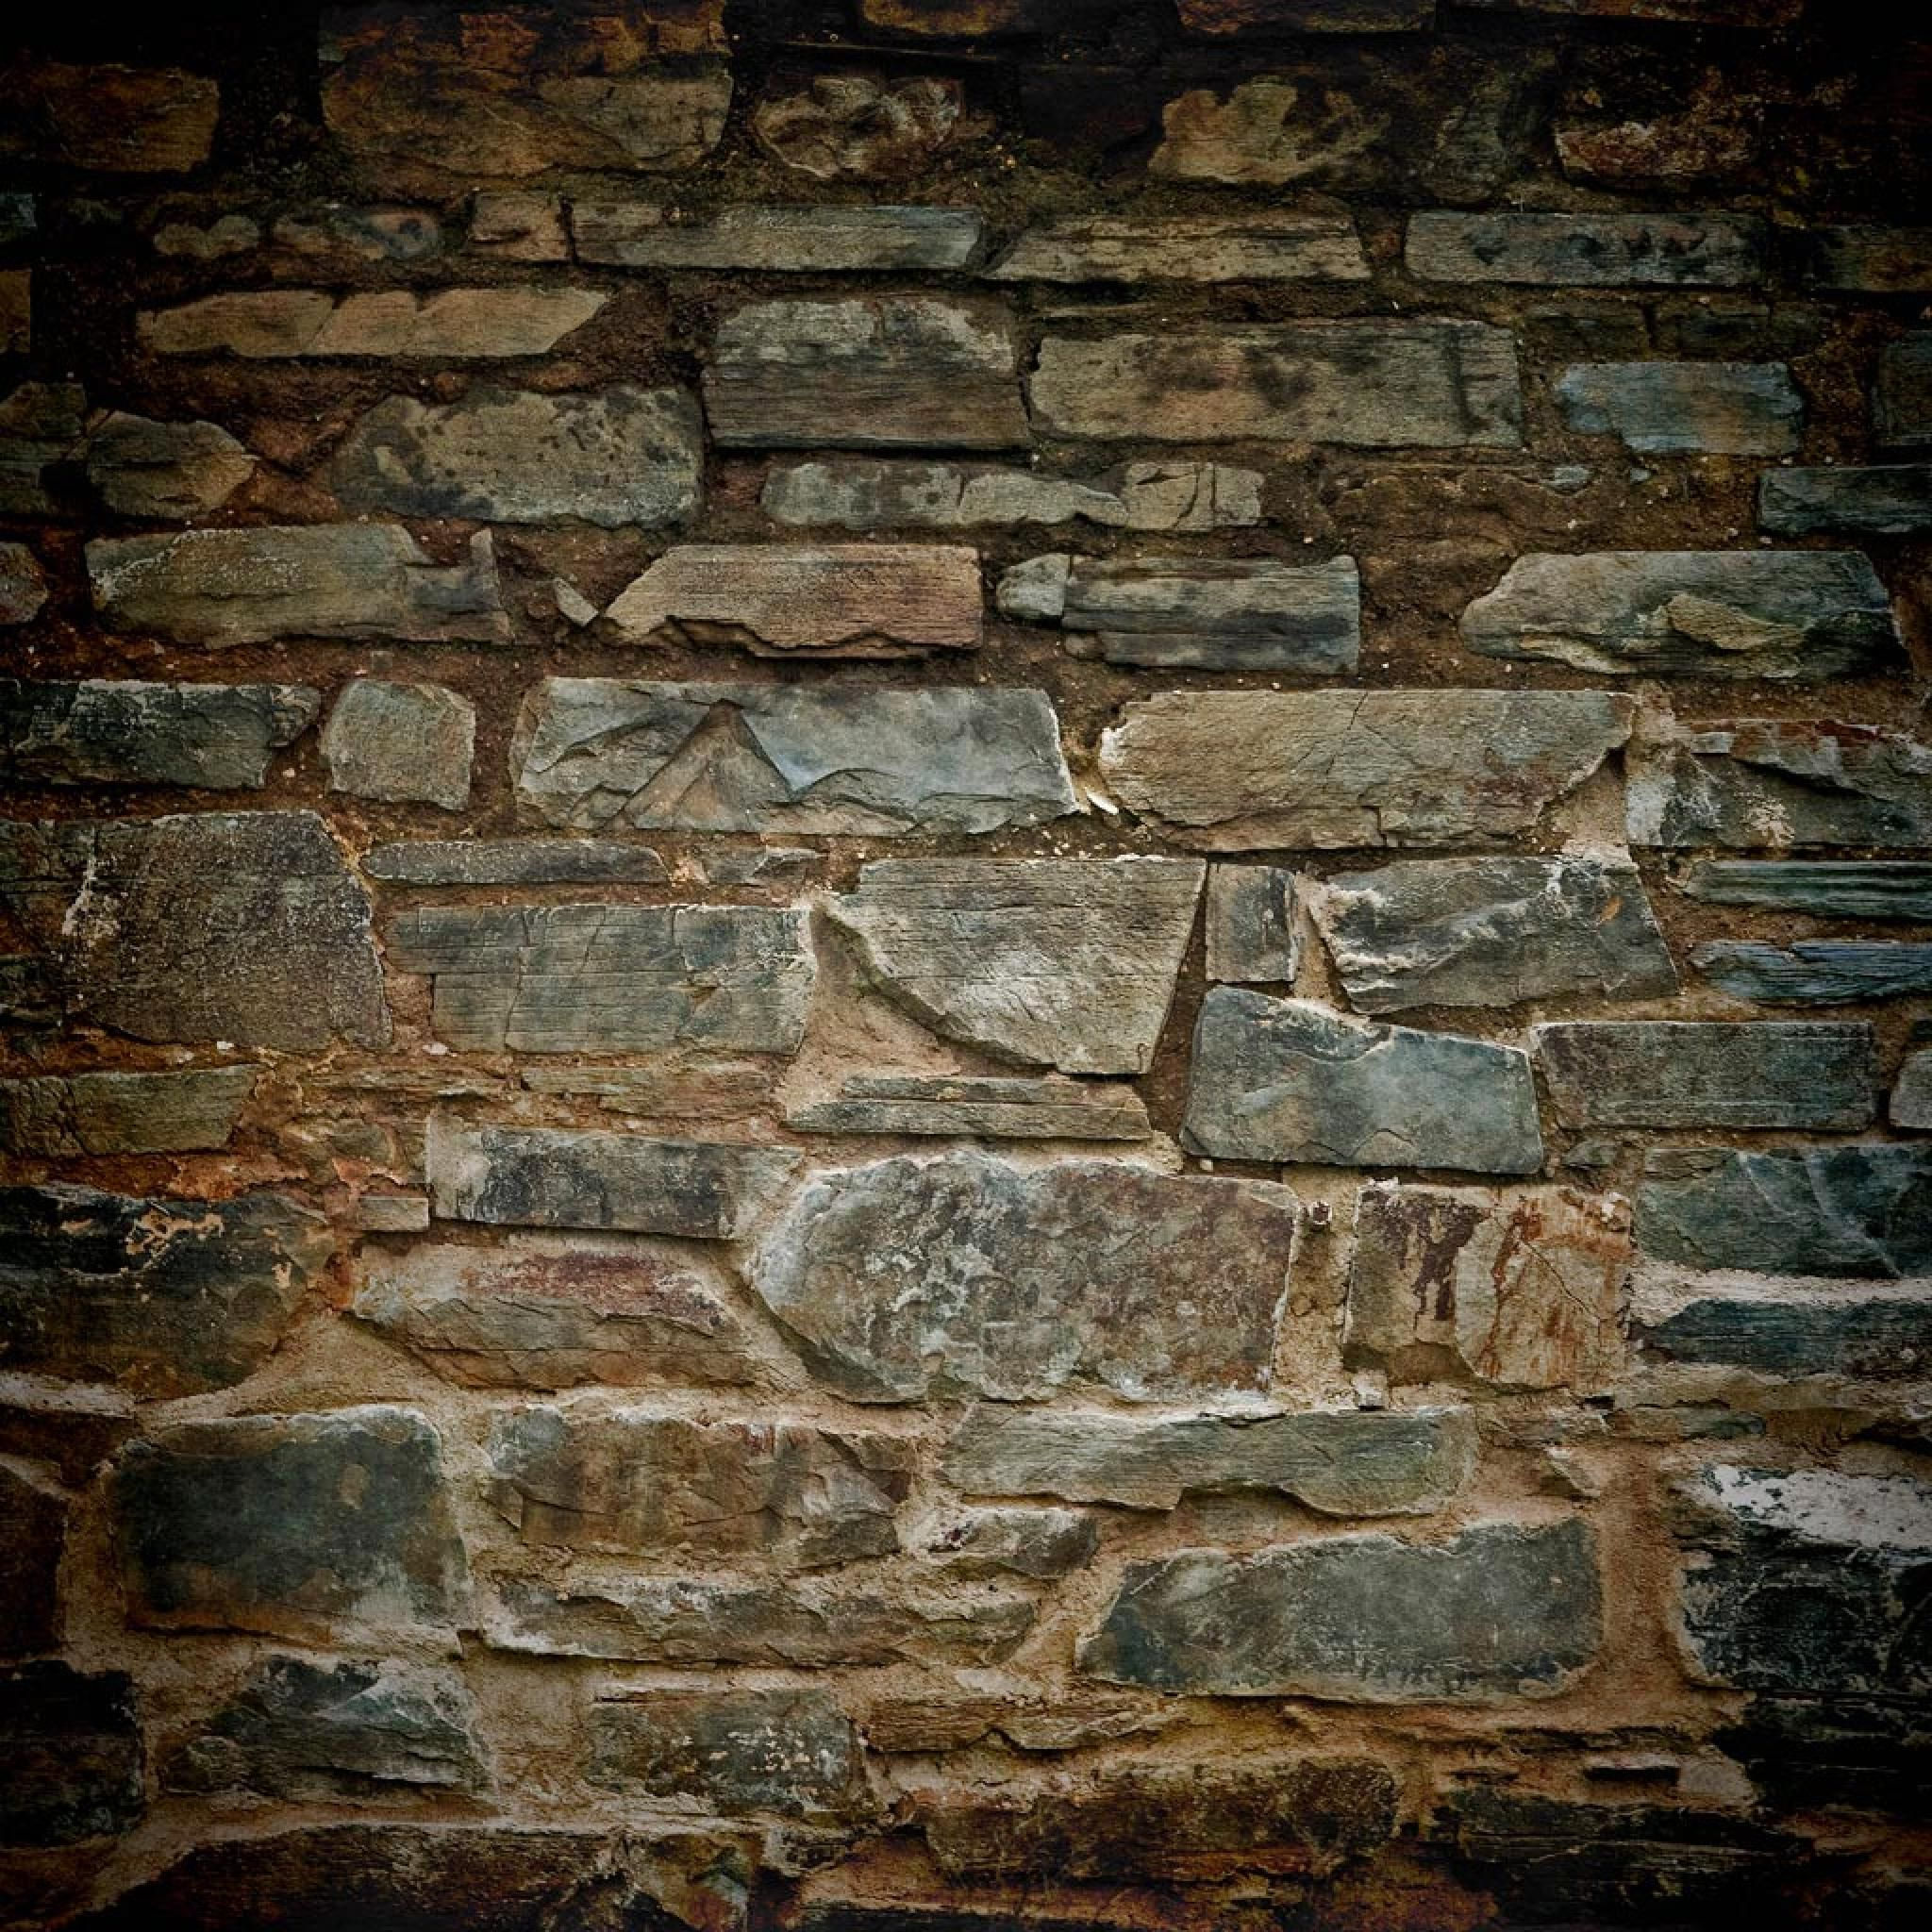 Backgrounds hd old stone brick wall texture wallpaper for for Wallpaper images for house walls